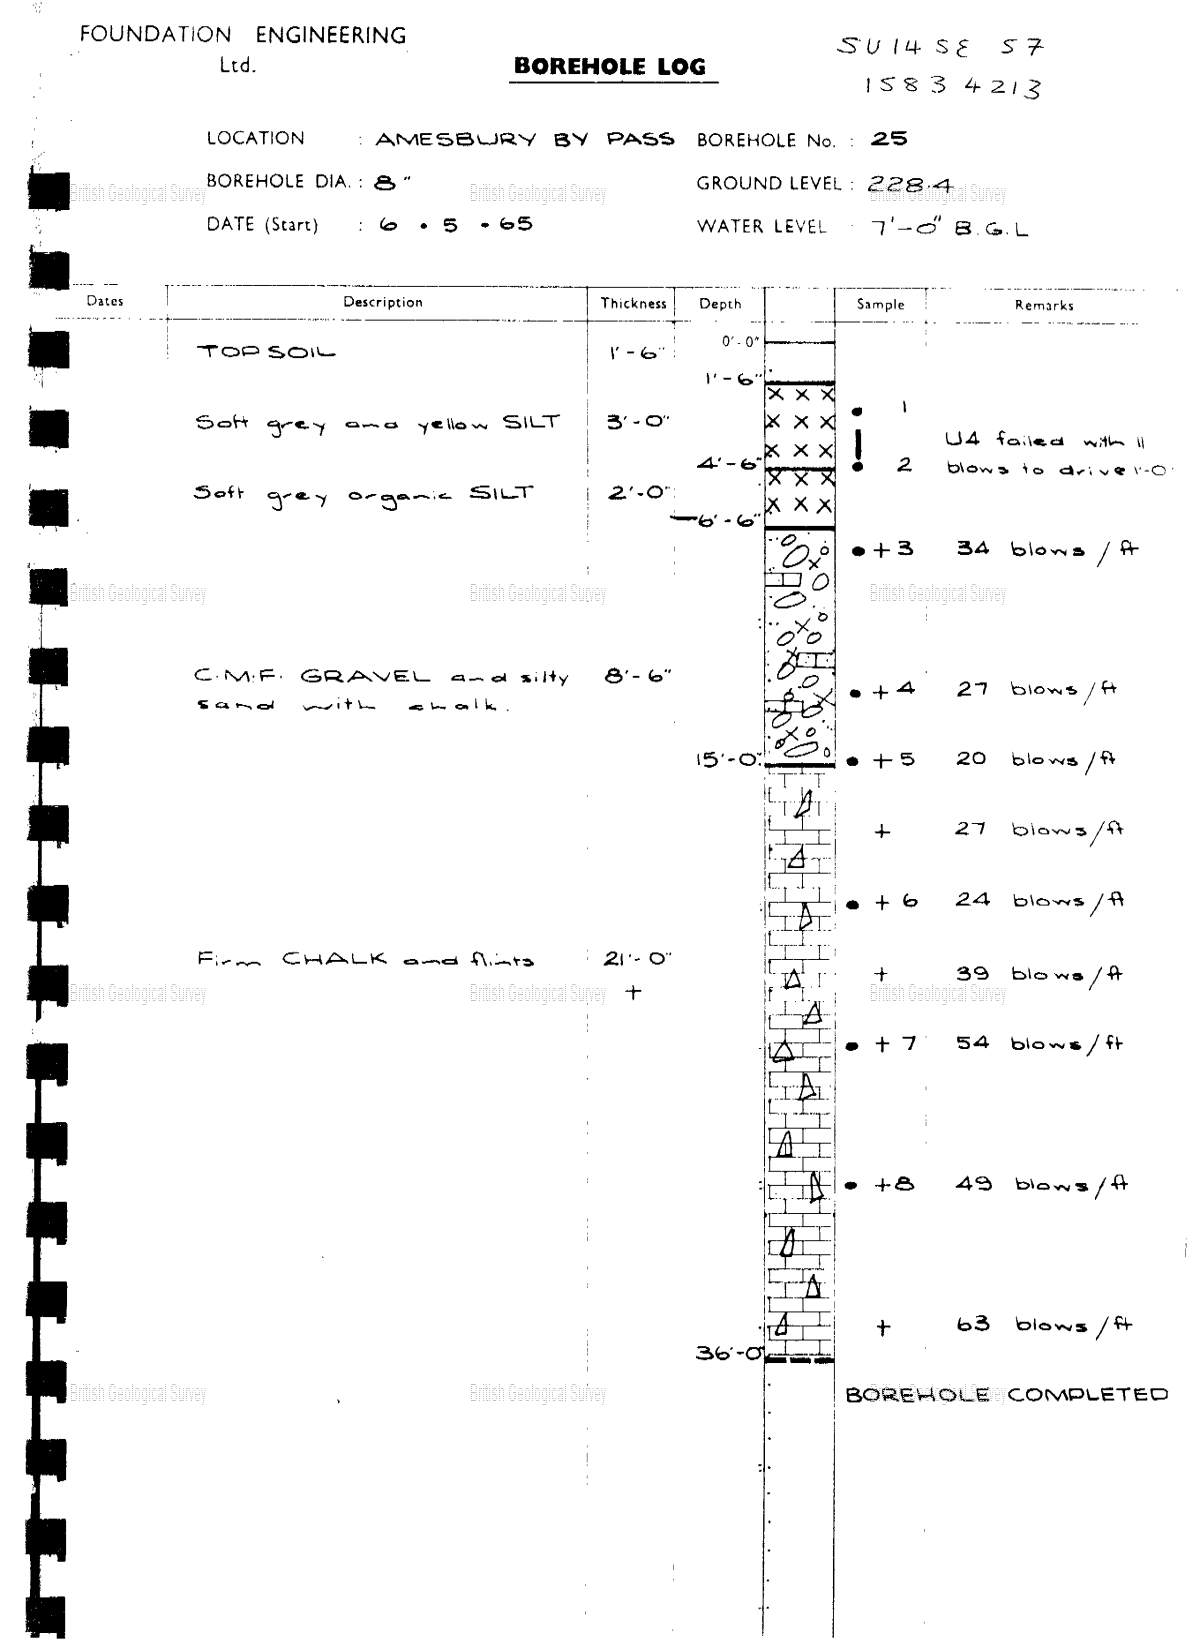 Scanned image of the borehole log